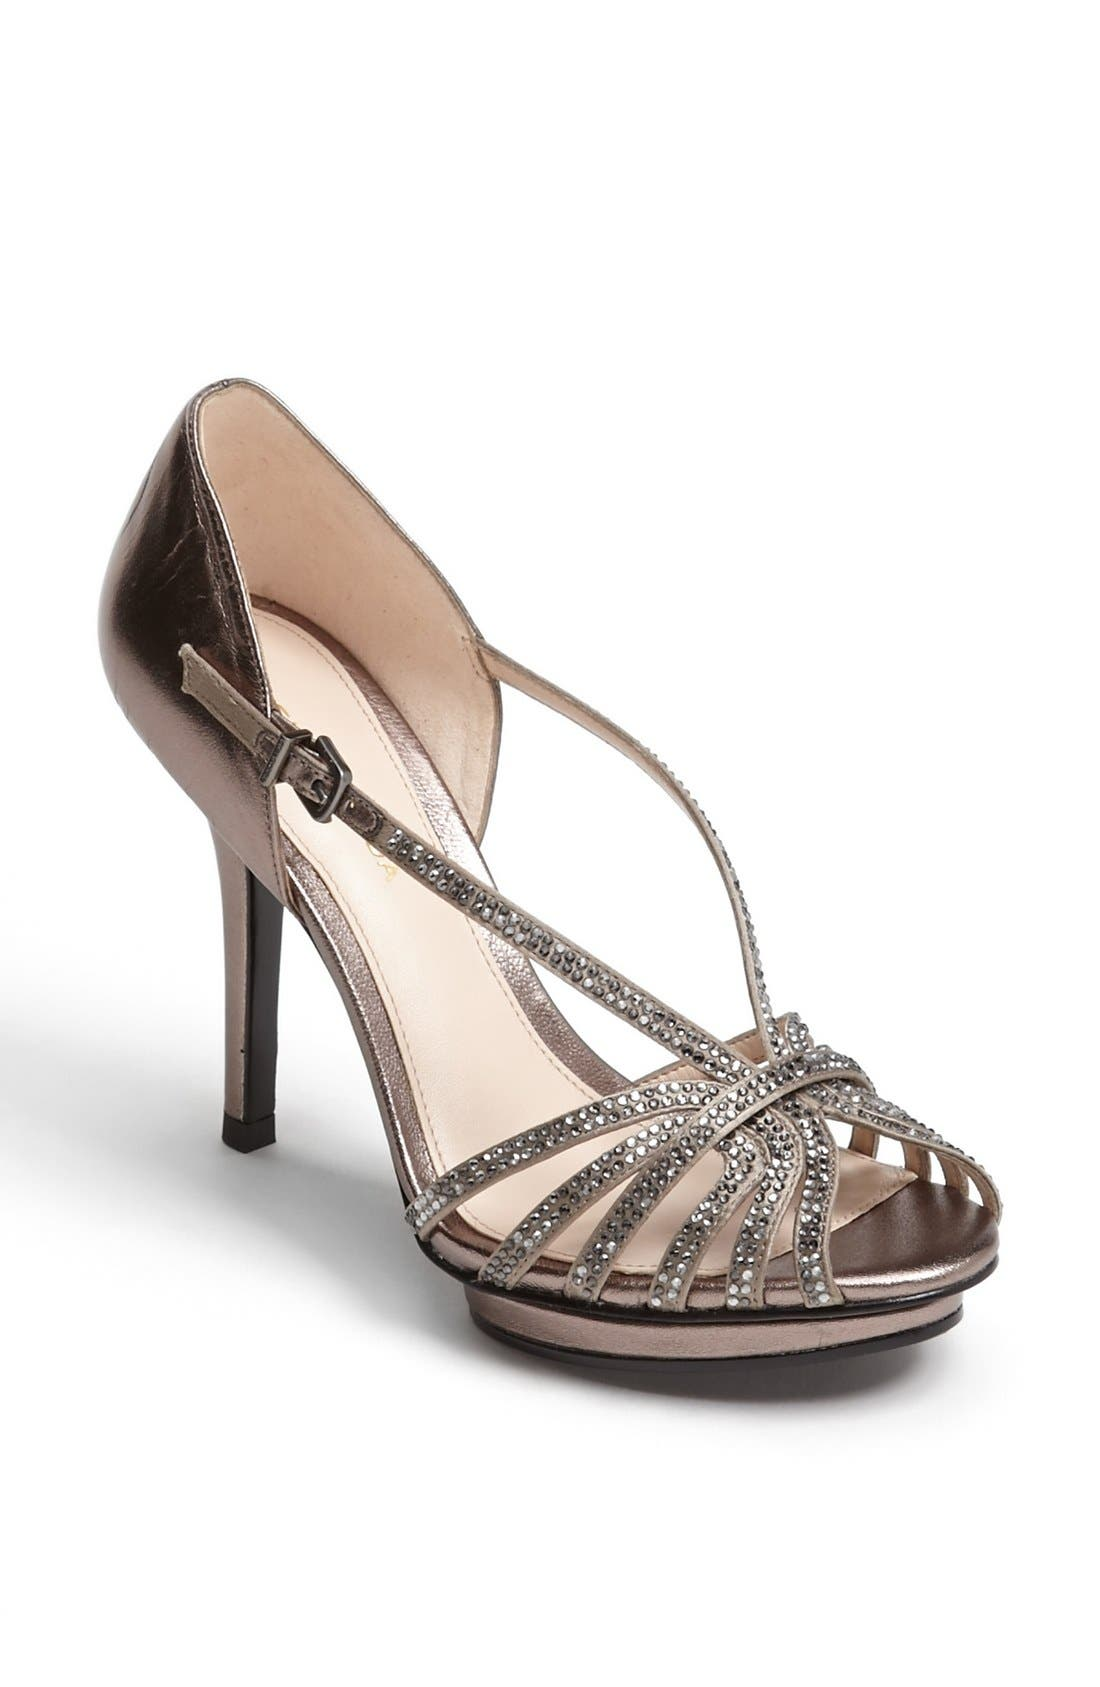 Alternate Image 1 Selected - Pelle Moda 'Raya' Sandal